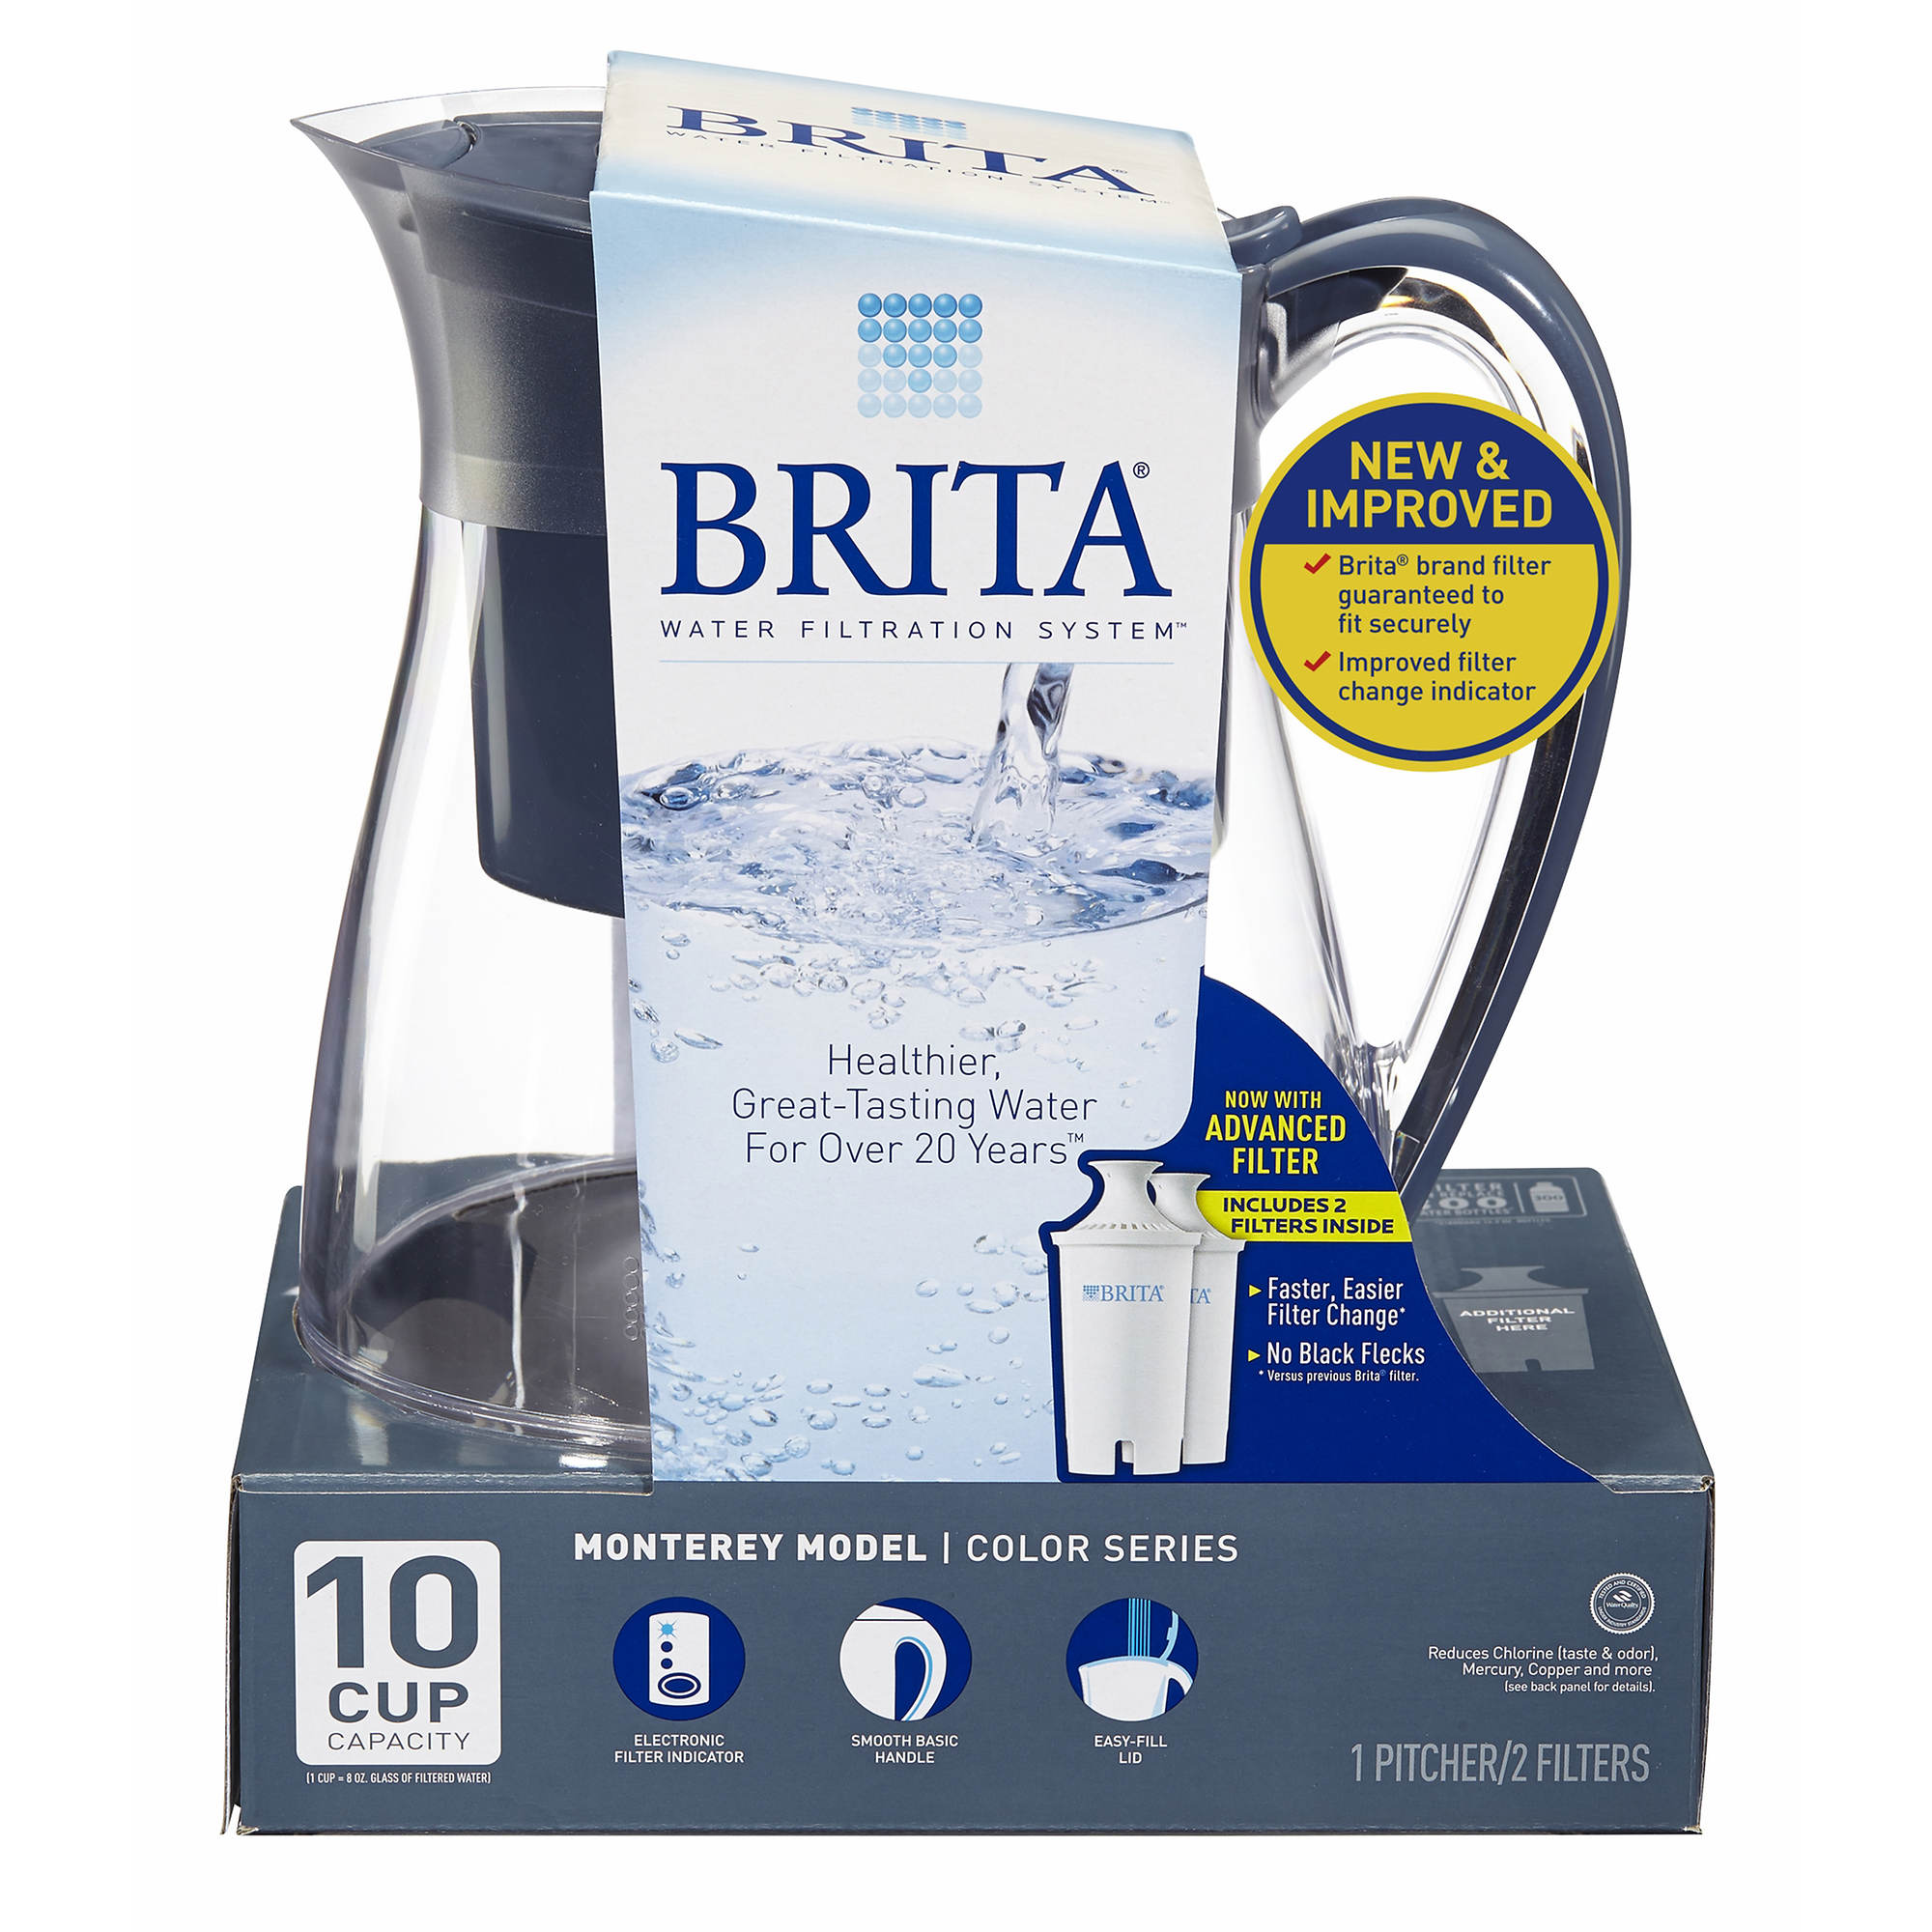 H2O is even better with Brita Rewards Earn points for Brita ® purchases and activities, then redeem them for gear, sweepstakes entries and more. You'll get an instant $2 coupon just for joining.